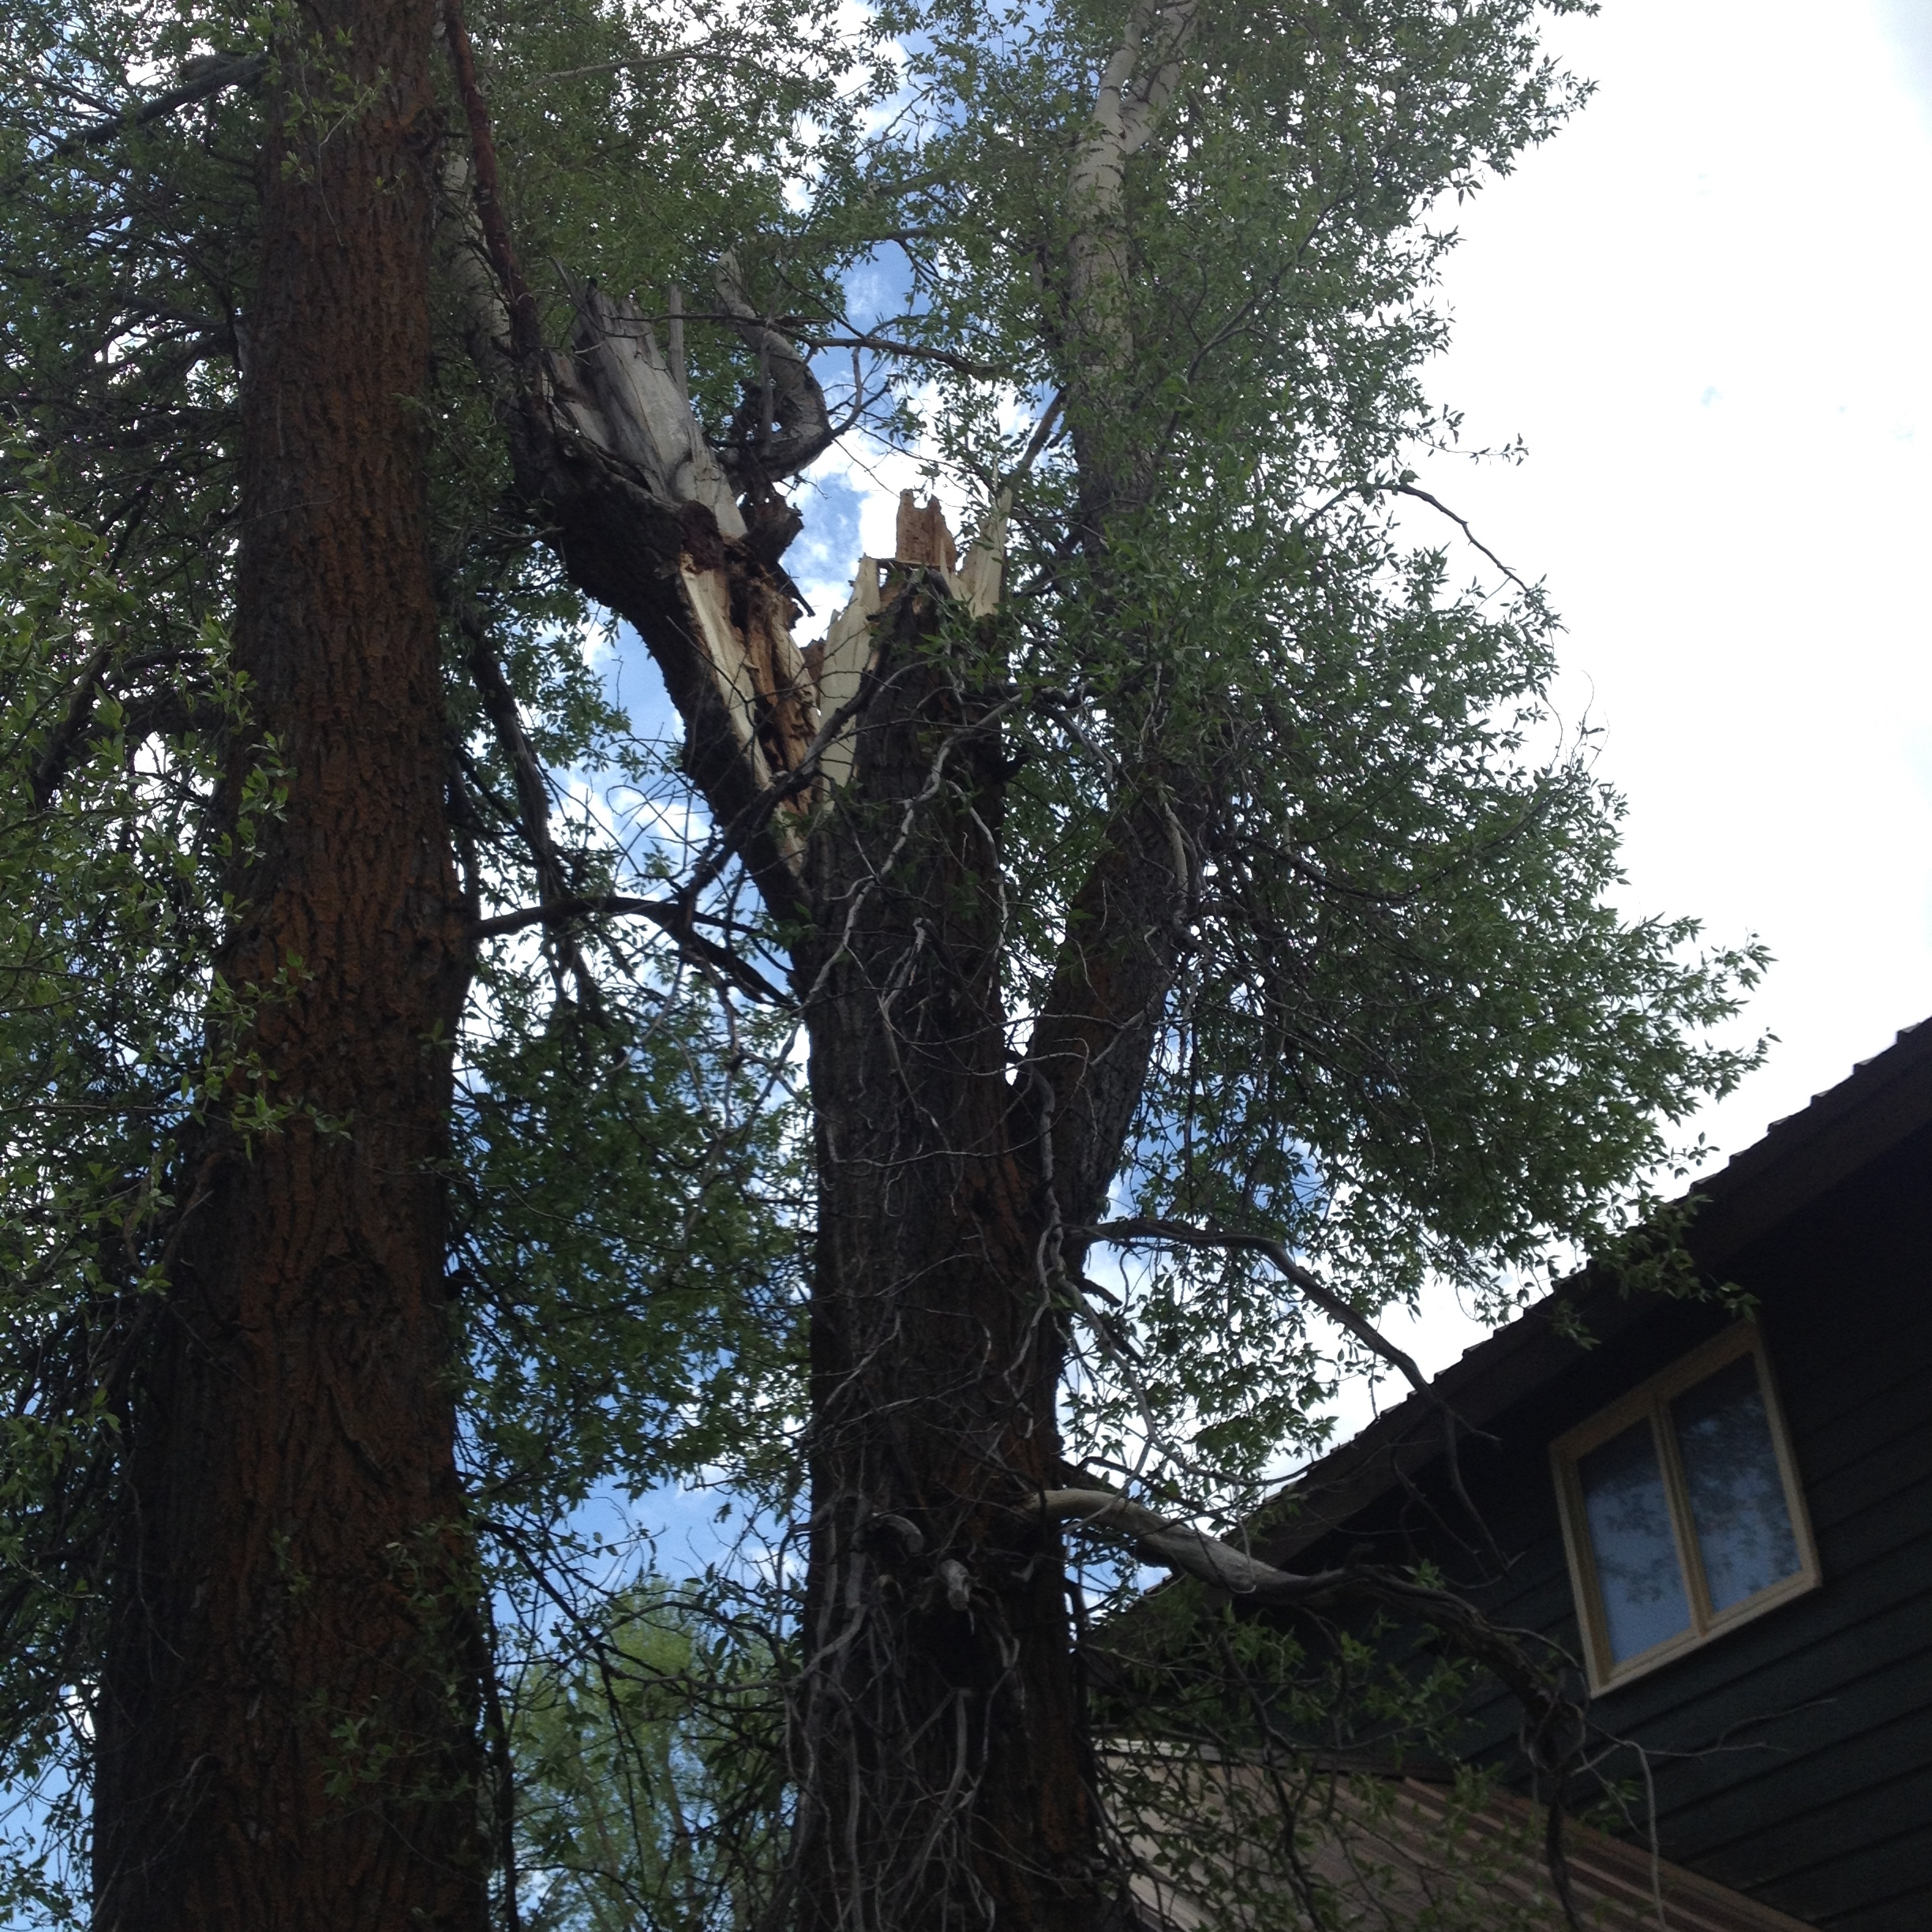 Large Cottonwood Stem Failure